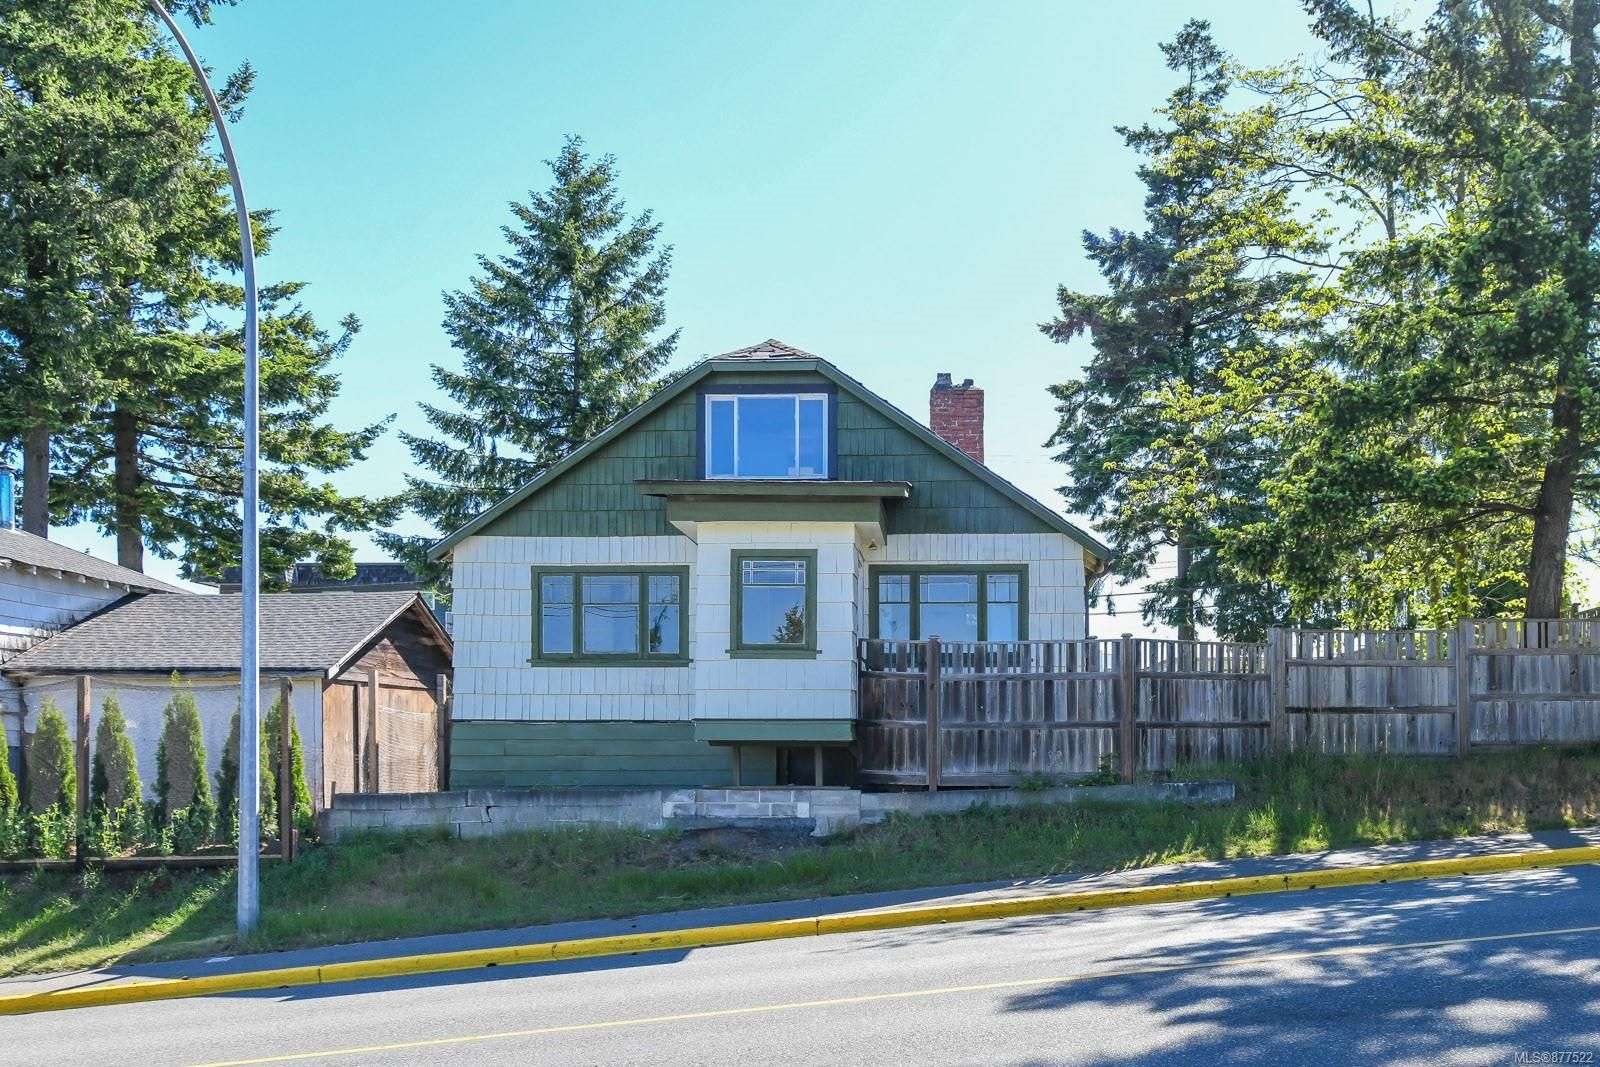 Main Photo: 911 Dogwood St in : CR Campbell River Central House for sale (Campbell River)  : MLS®# 877522